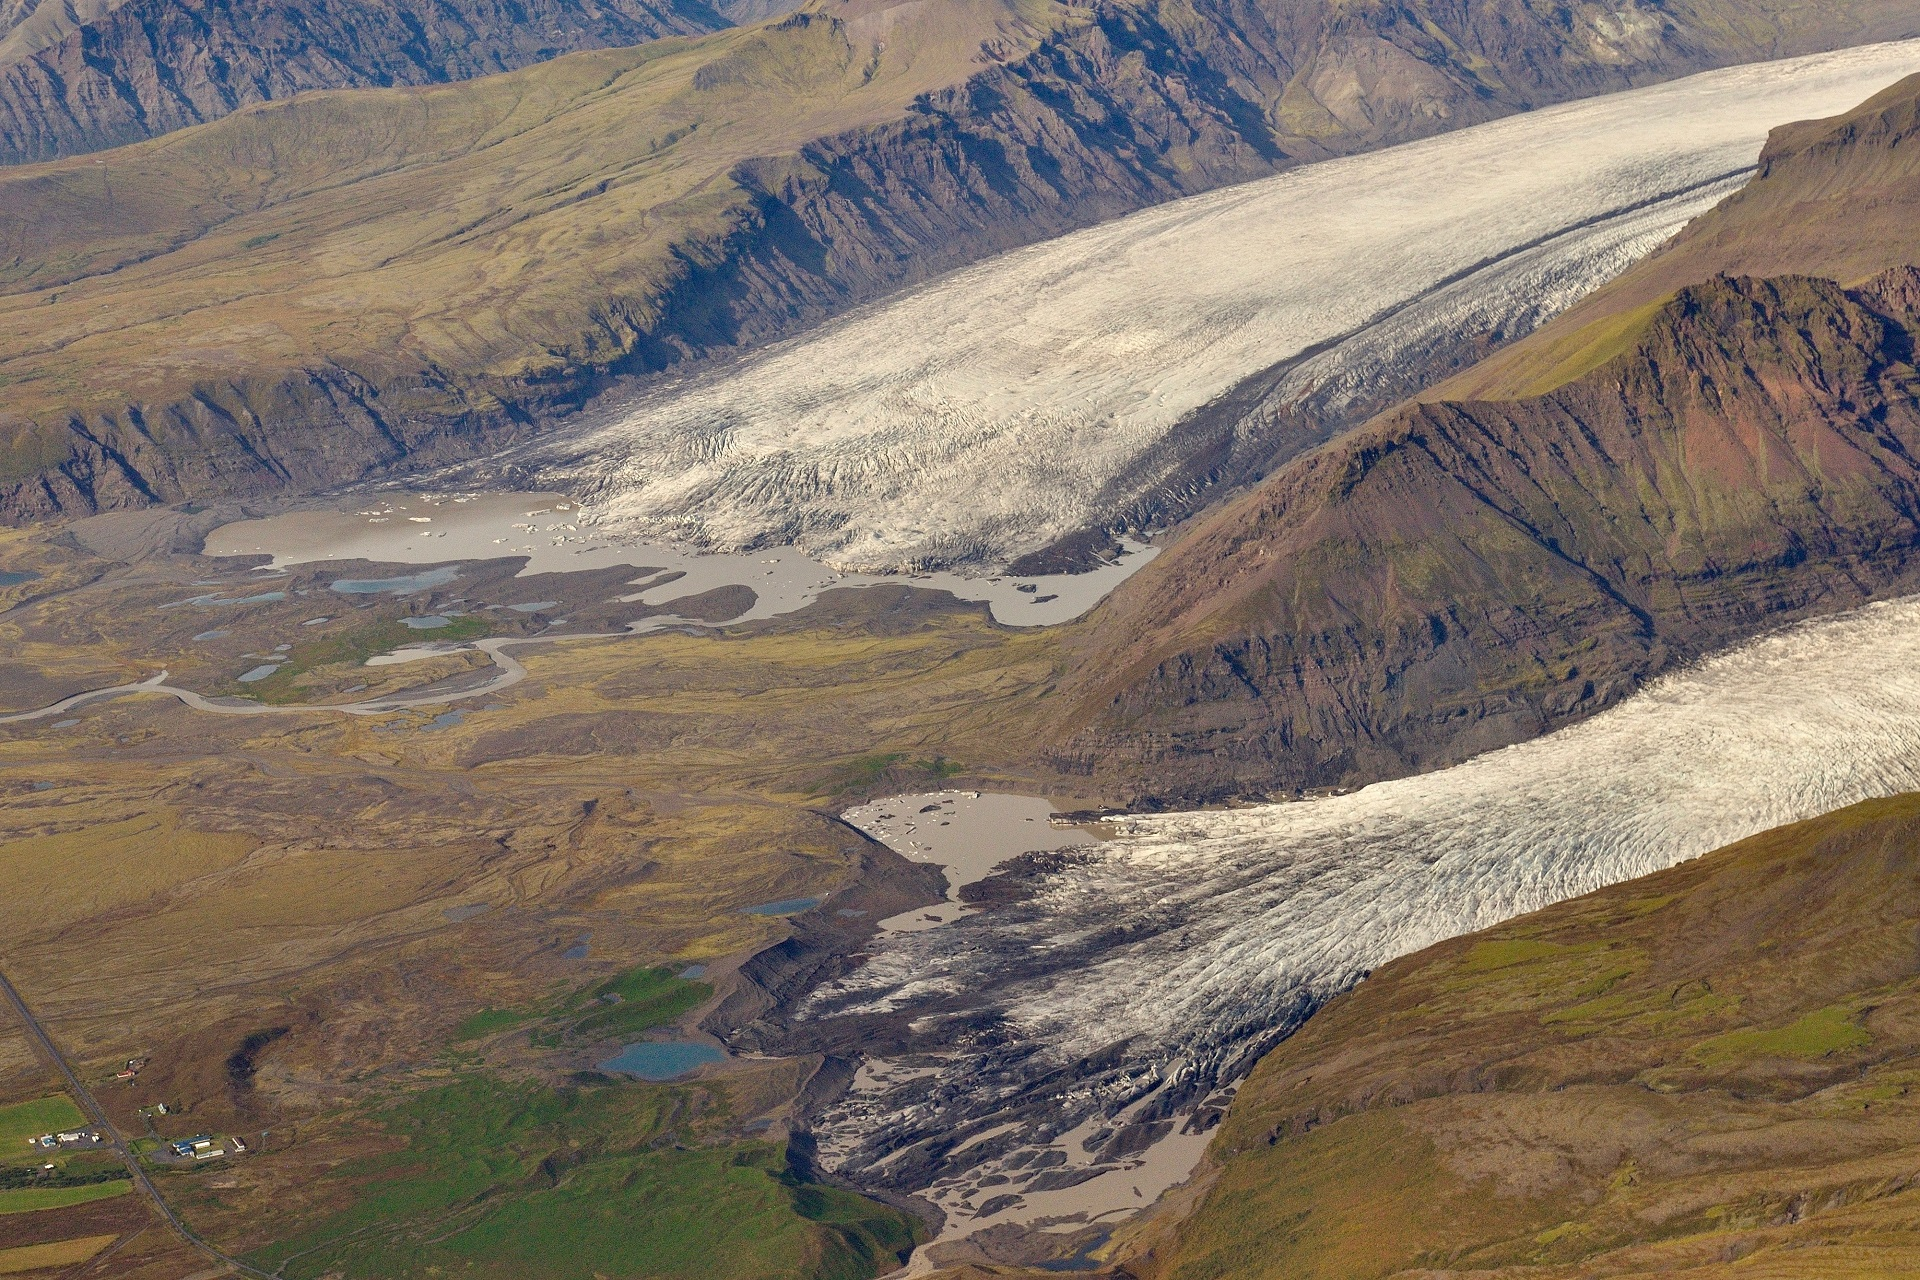 Svínafellsjökull outlet glacier with several small, separate lakes (front) and Skaftafellsjökull outlet glacier with an elongated lagoon between the glacier moraine and the terminus (back). Photo: Snævarr Guðmundsson, September 13th 2014.